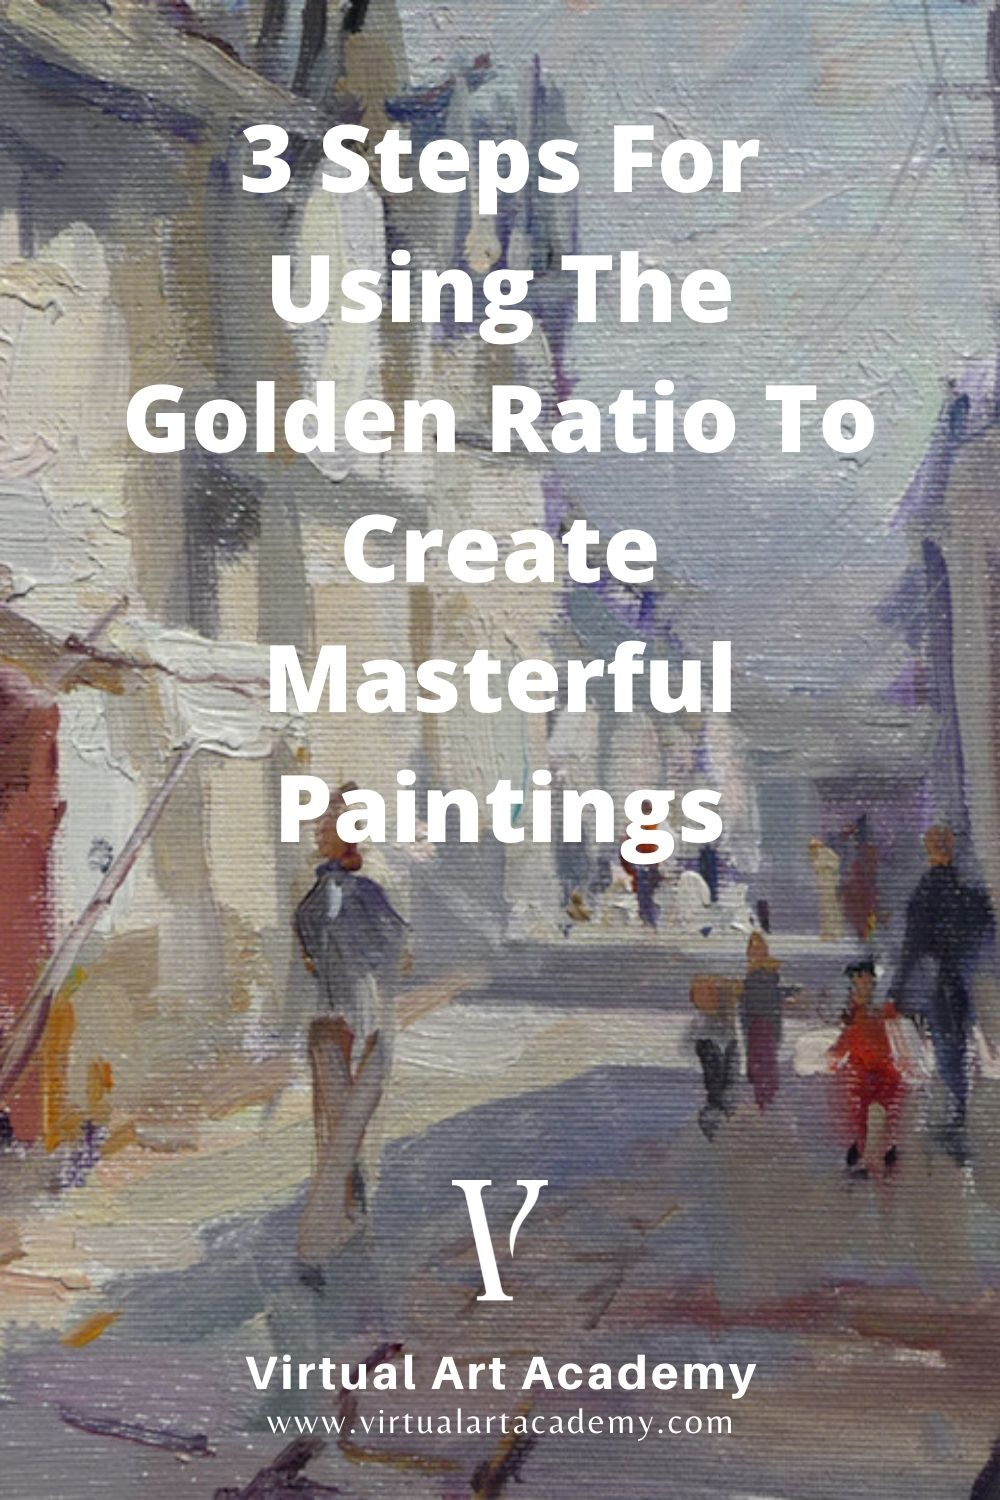 3 Steps For Using The Golden Ratio To Create Masterful Paintings